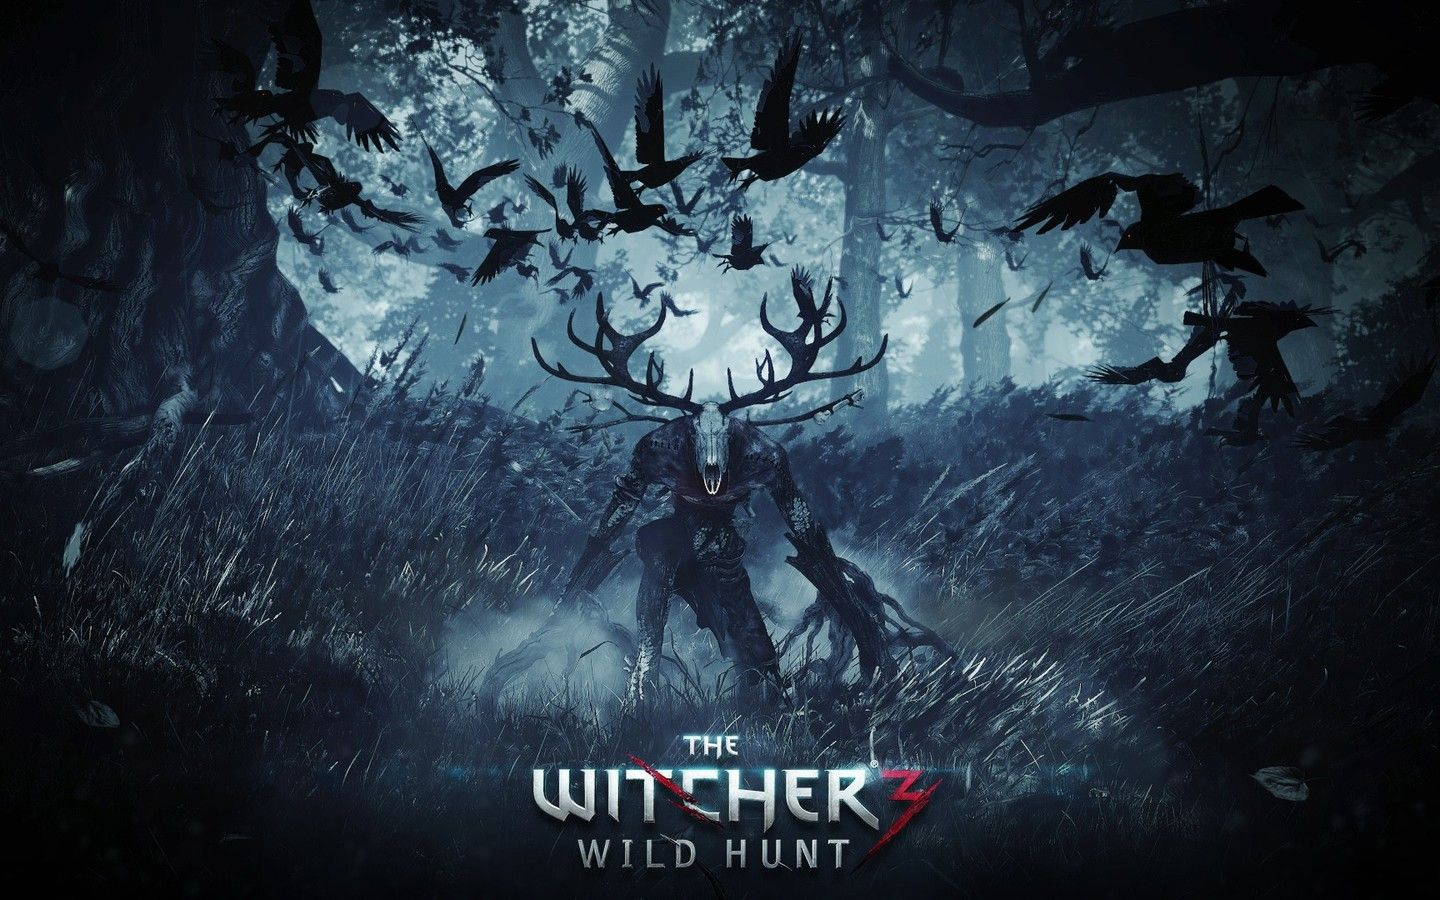 Minimalistic Witcher 3 Wallpapers High Definition Firefox Wallpaper Free Download Wallpapers Desktop The Witcher Wild Hunt Wild Hunt The Witcher